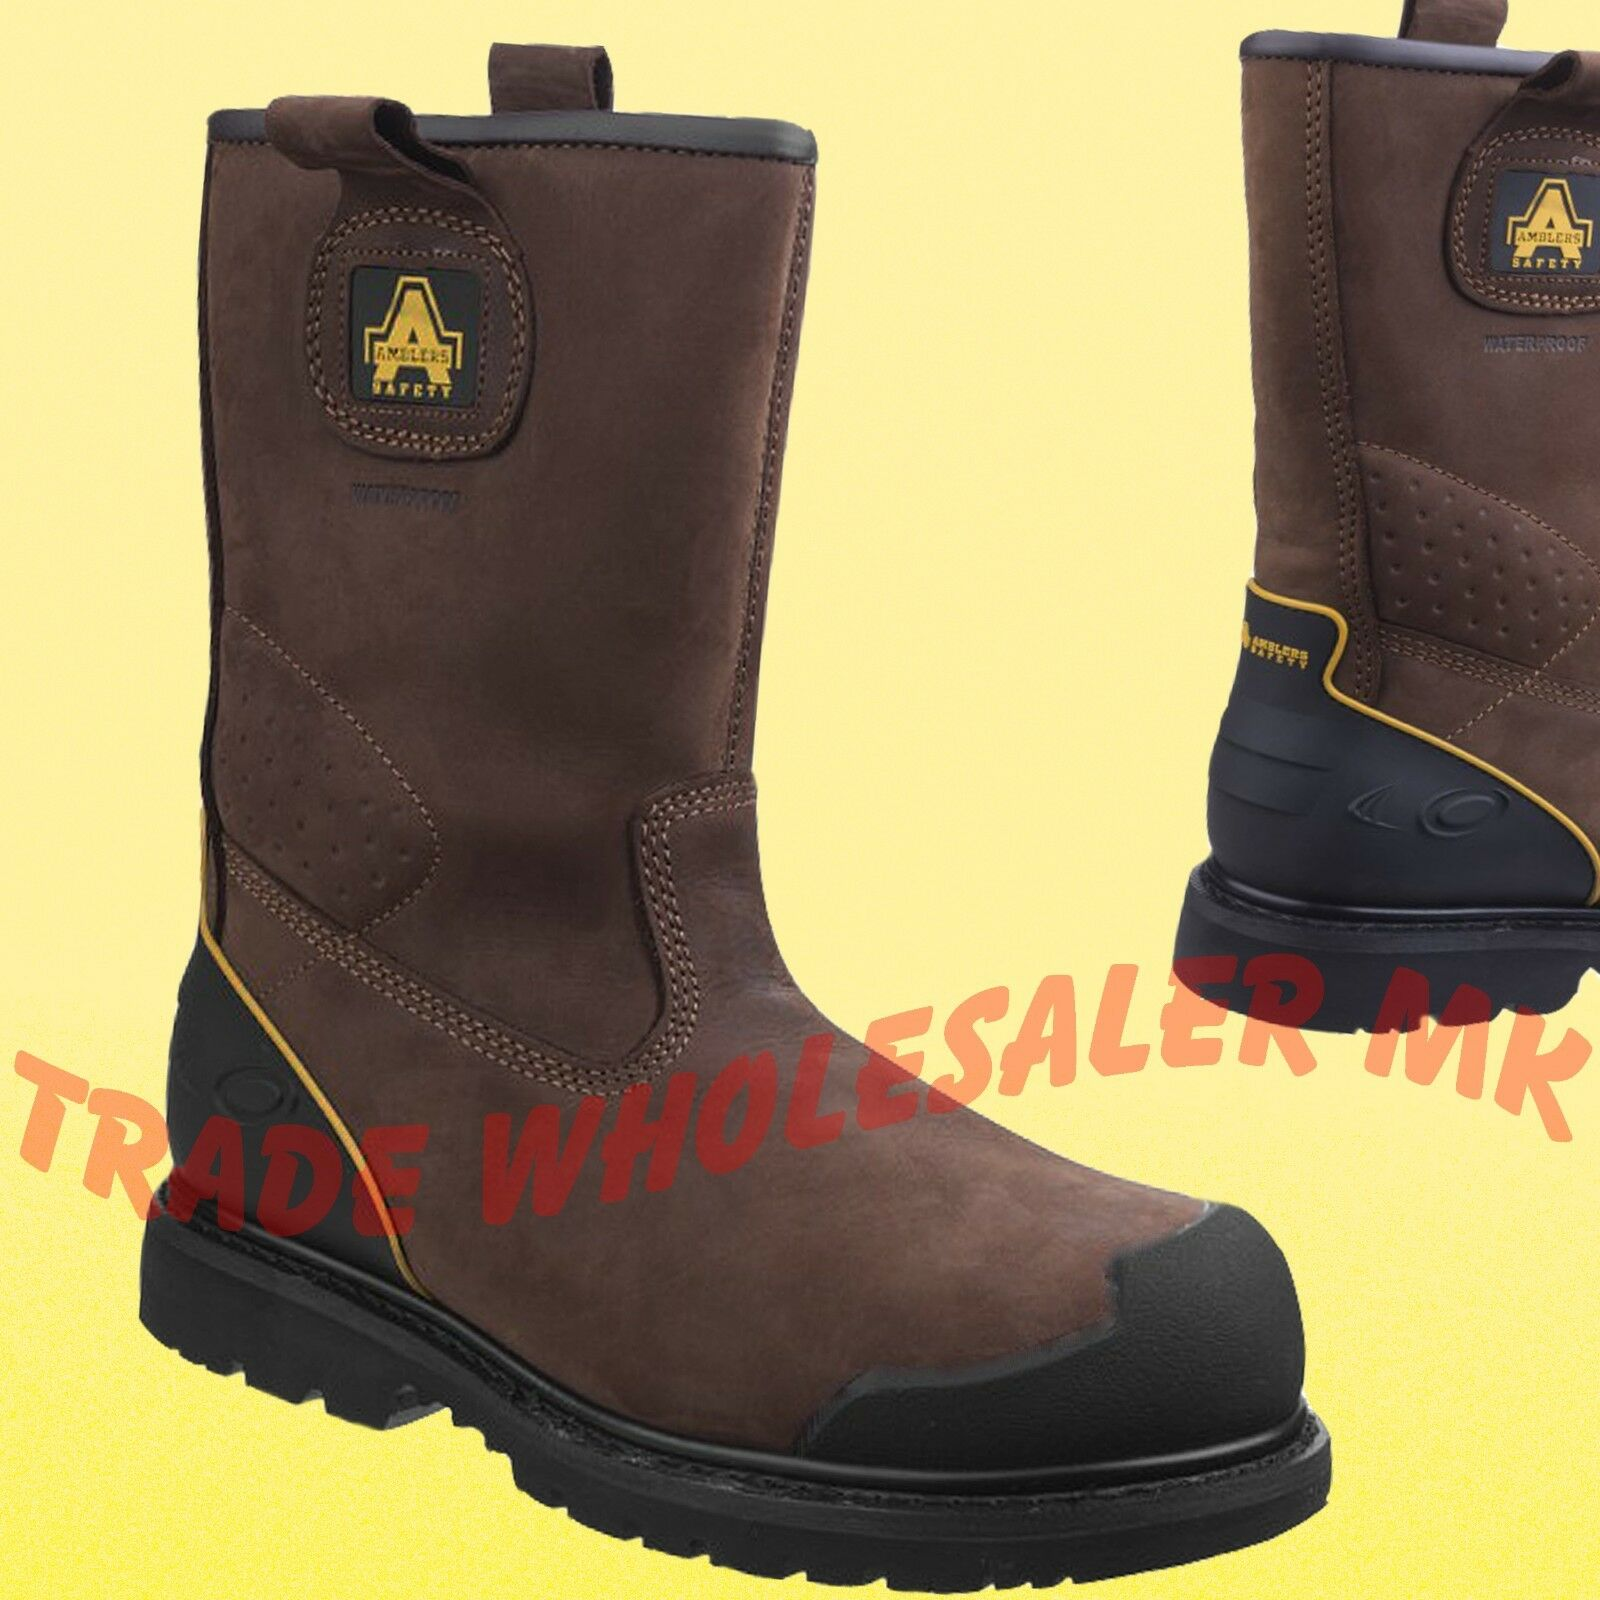 Amblers Safety Rigger Boots- New Advanced Build Year Round Rigger Boots   FS223